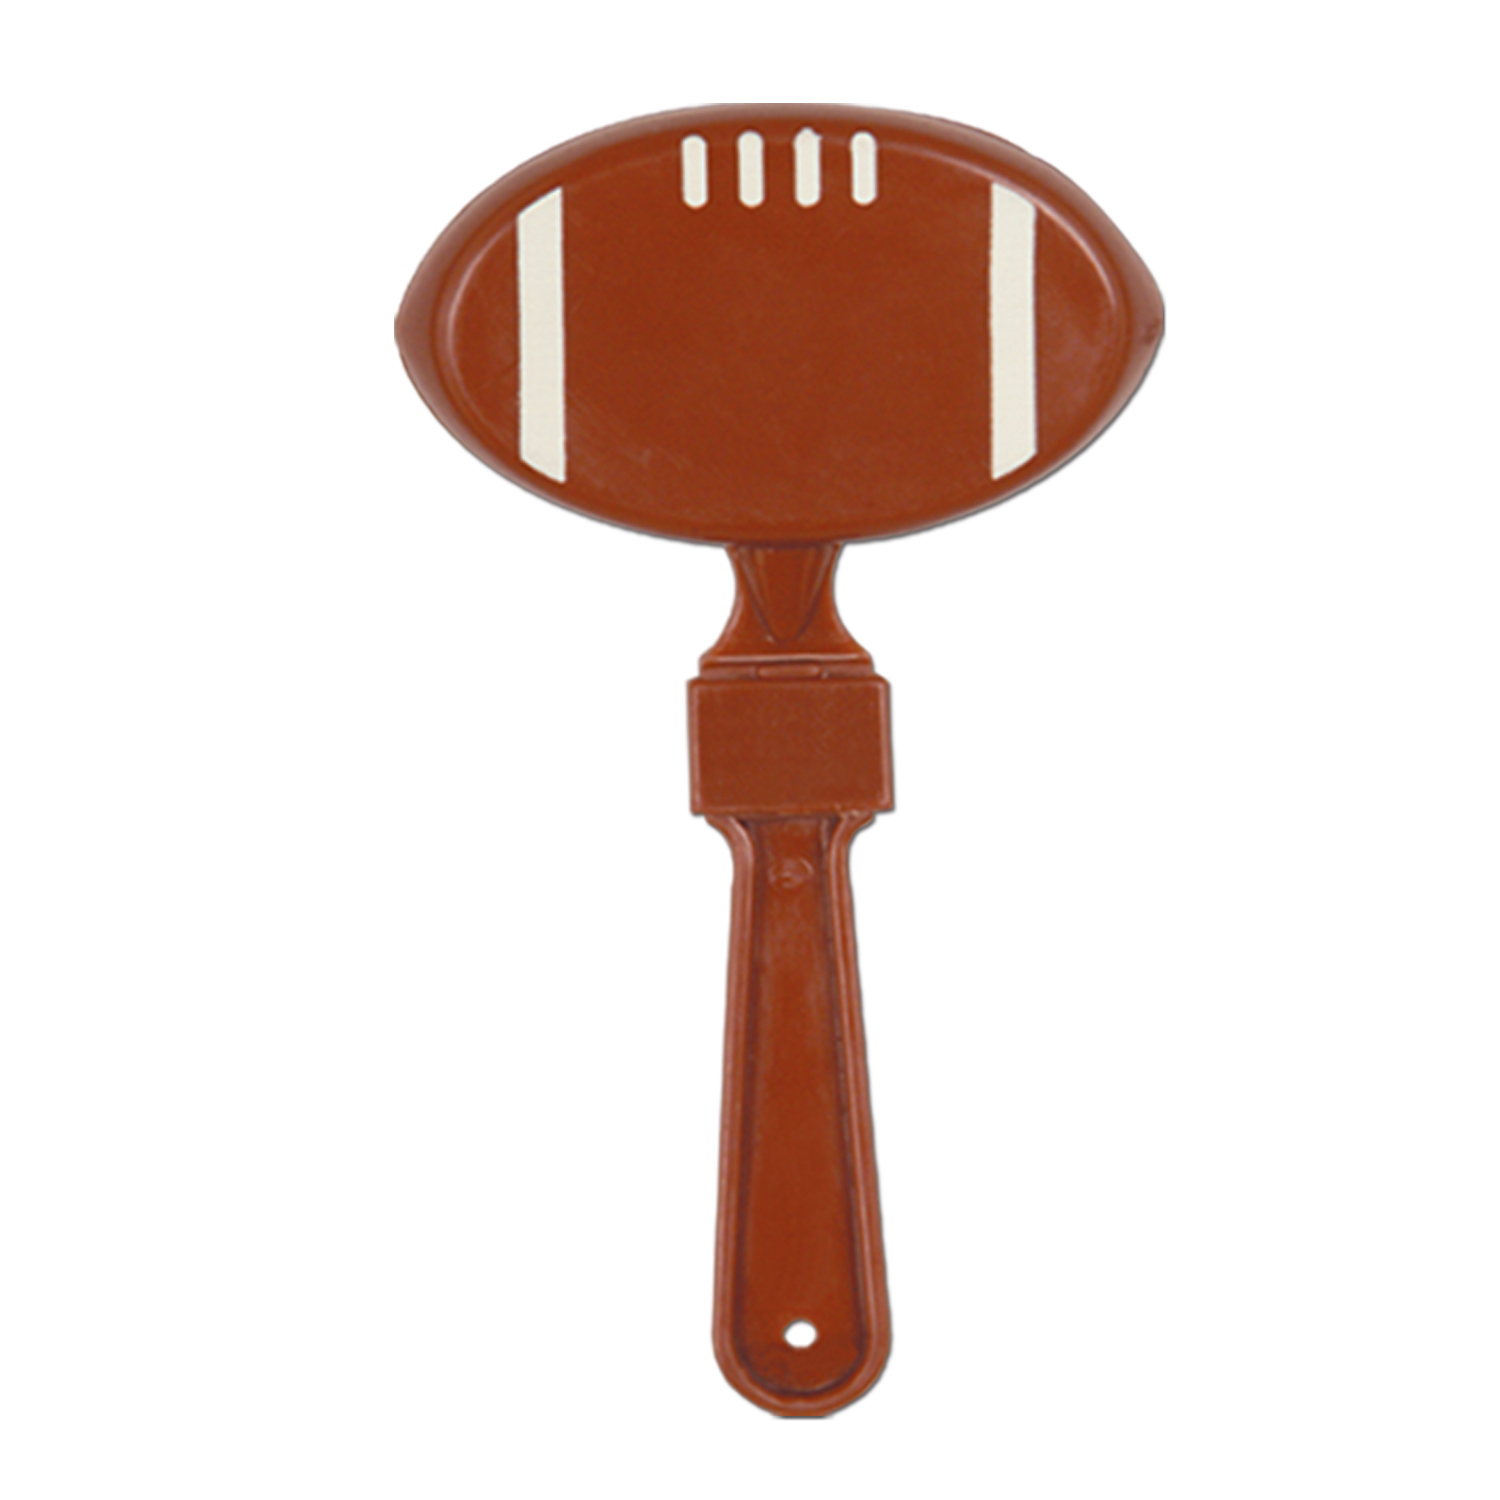 Football Clapper (Pack of 24) Football Clapper, party favor, brown, football game, big game, wholesale, inexpensive, bulk